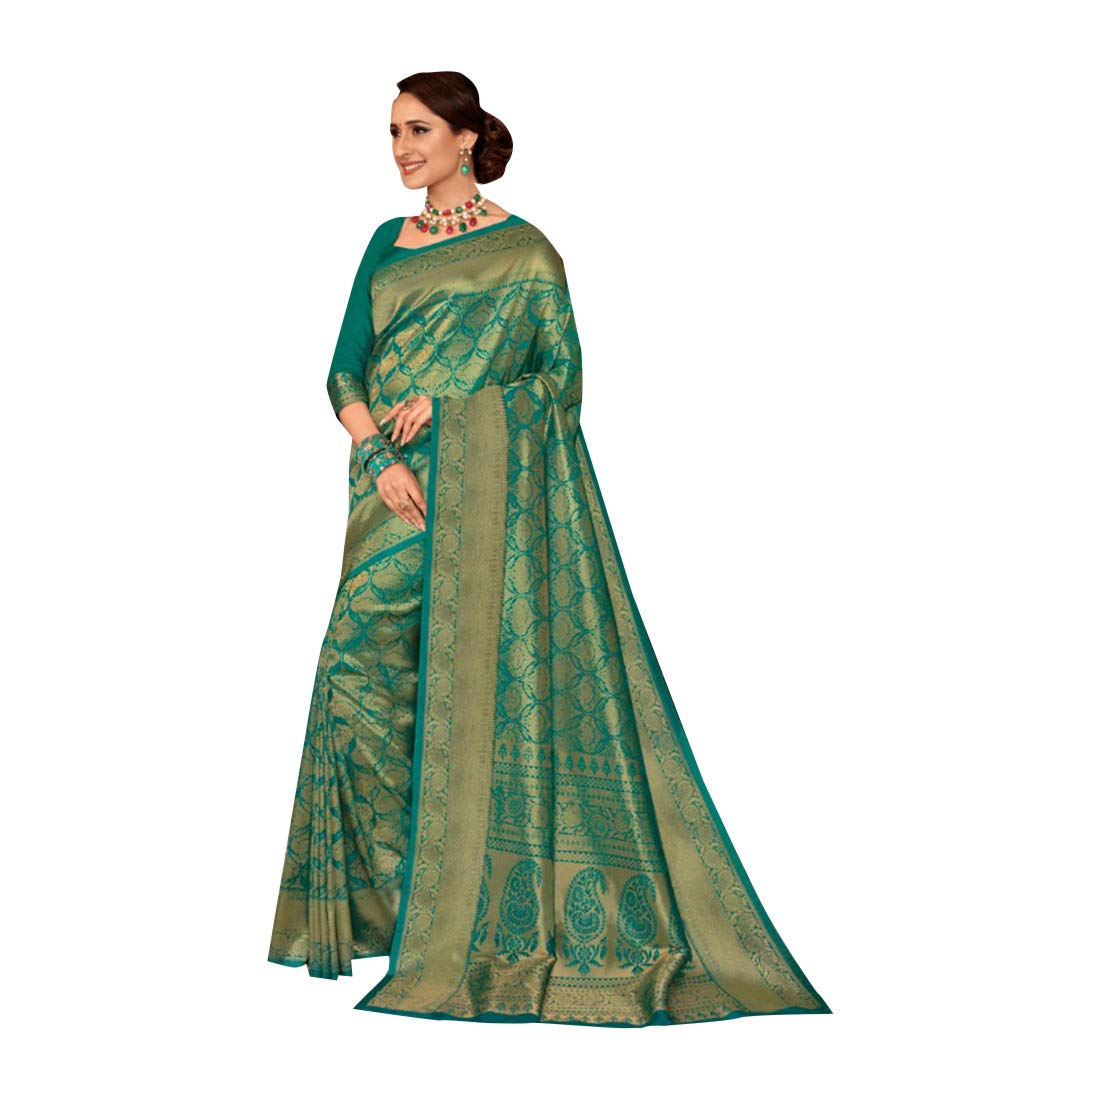 Royal Indian Traditional Festive Party wear Silk Sari for Women Saree with Blouse piece Designer collection 7918